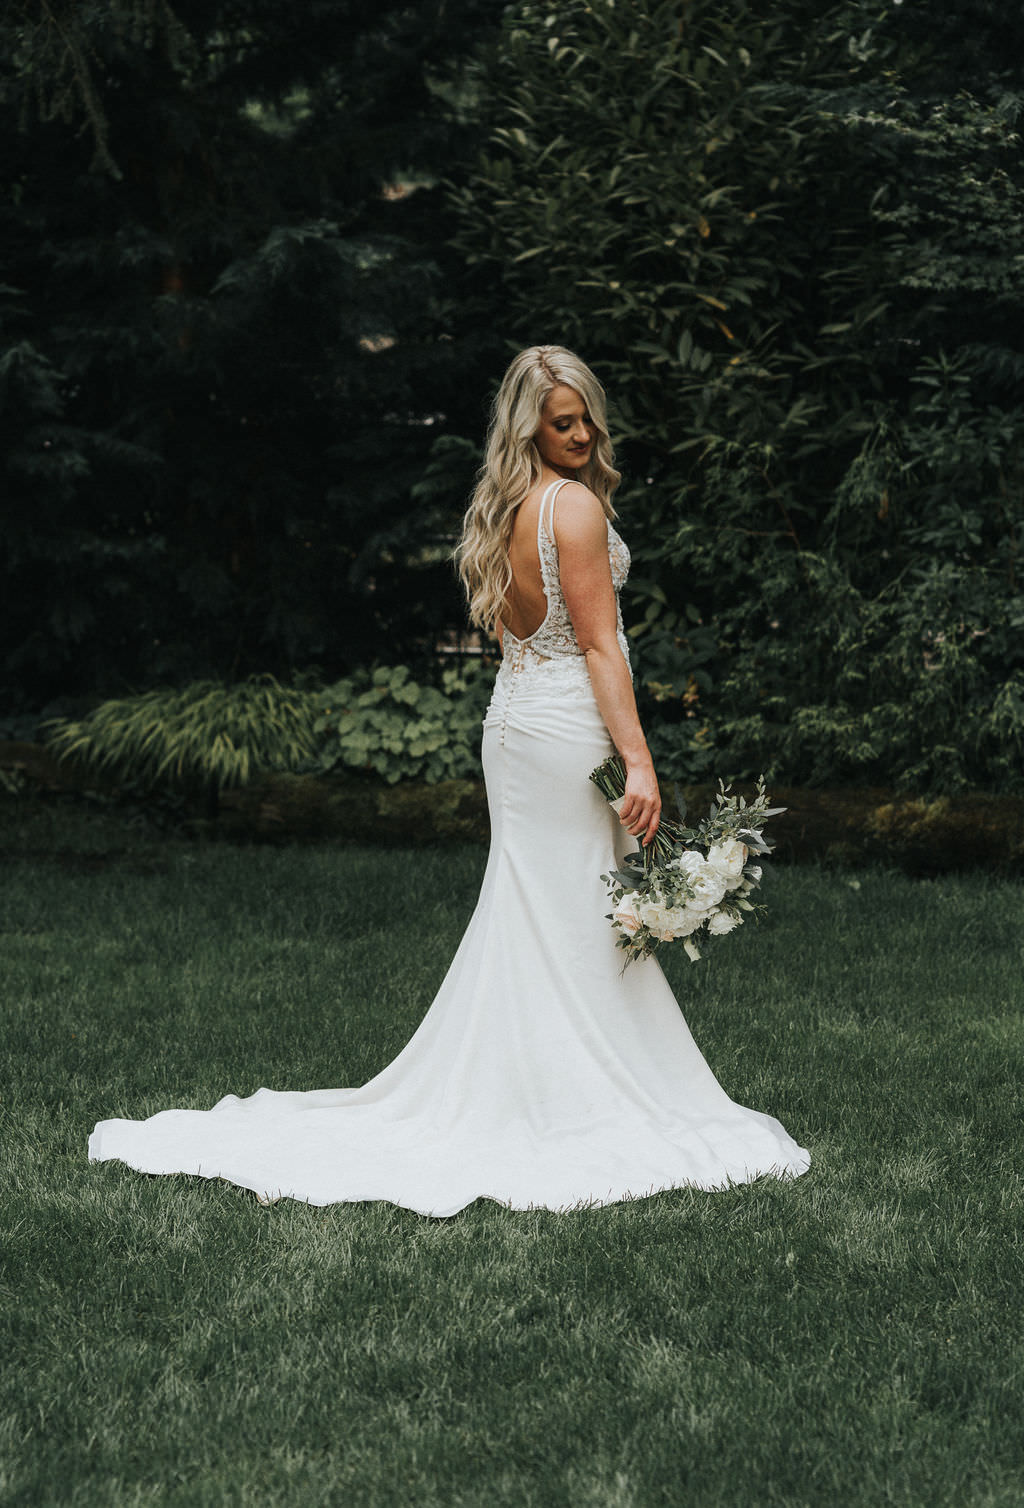 Bride Bridal Dress Gown Train Back Lace Greenhouse Garden Washington Wedding Beginning and End Photography